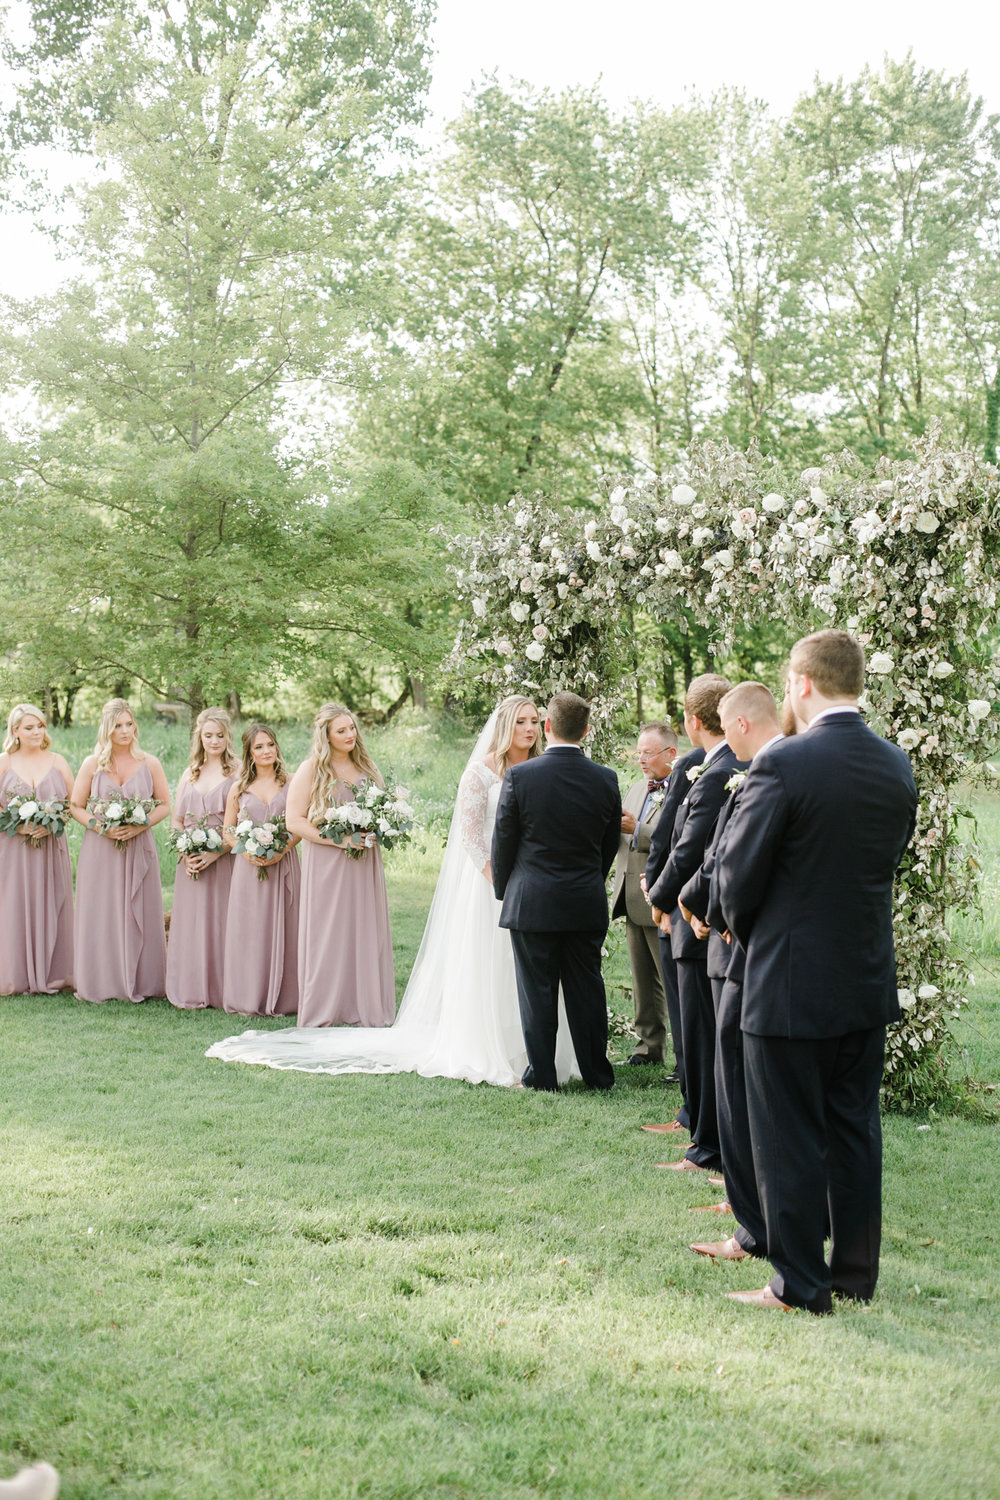 Natural, organic floral arch for the wedding ceremony backdrop // Nashville Wedding Florist